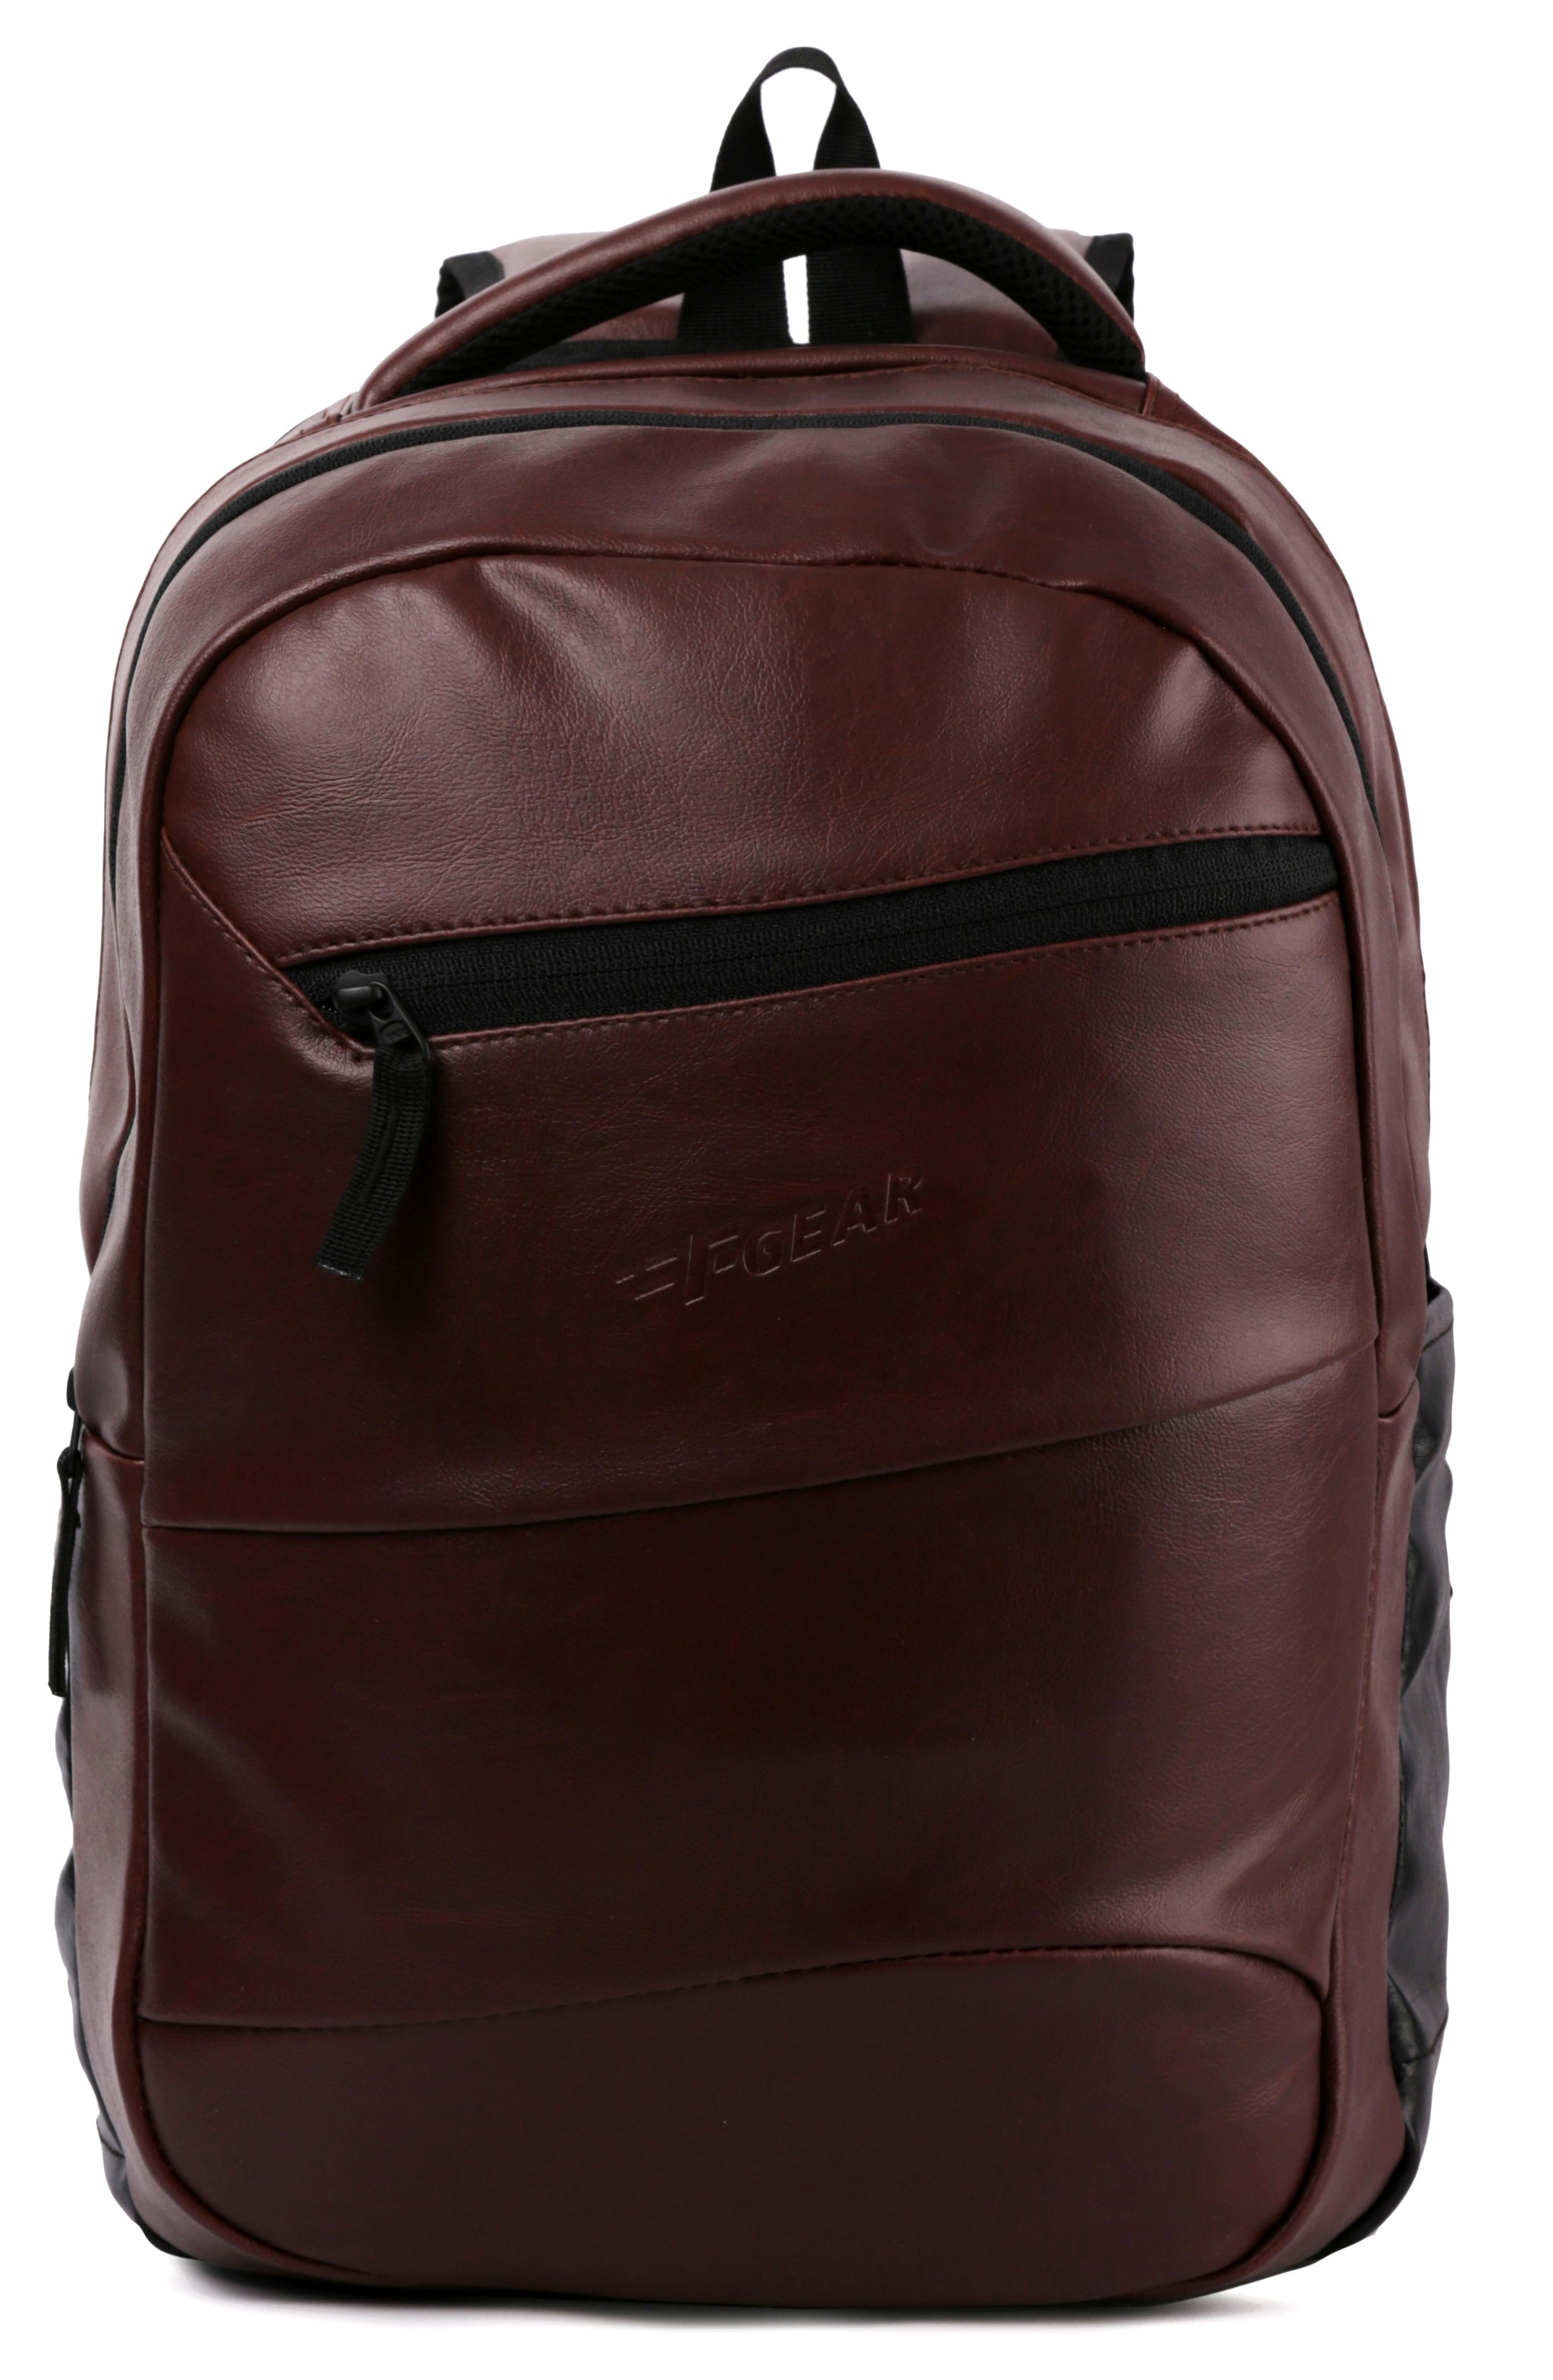 F Gear Bingo 25 L Laptop Backpack  (Tan)